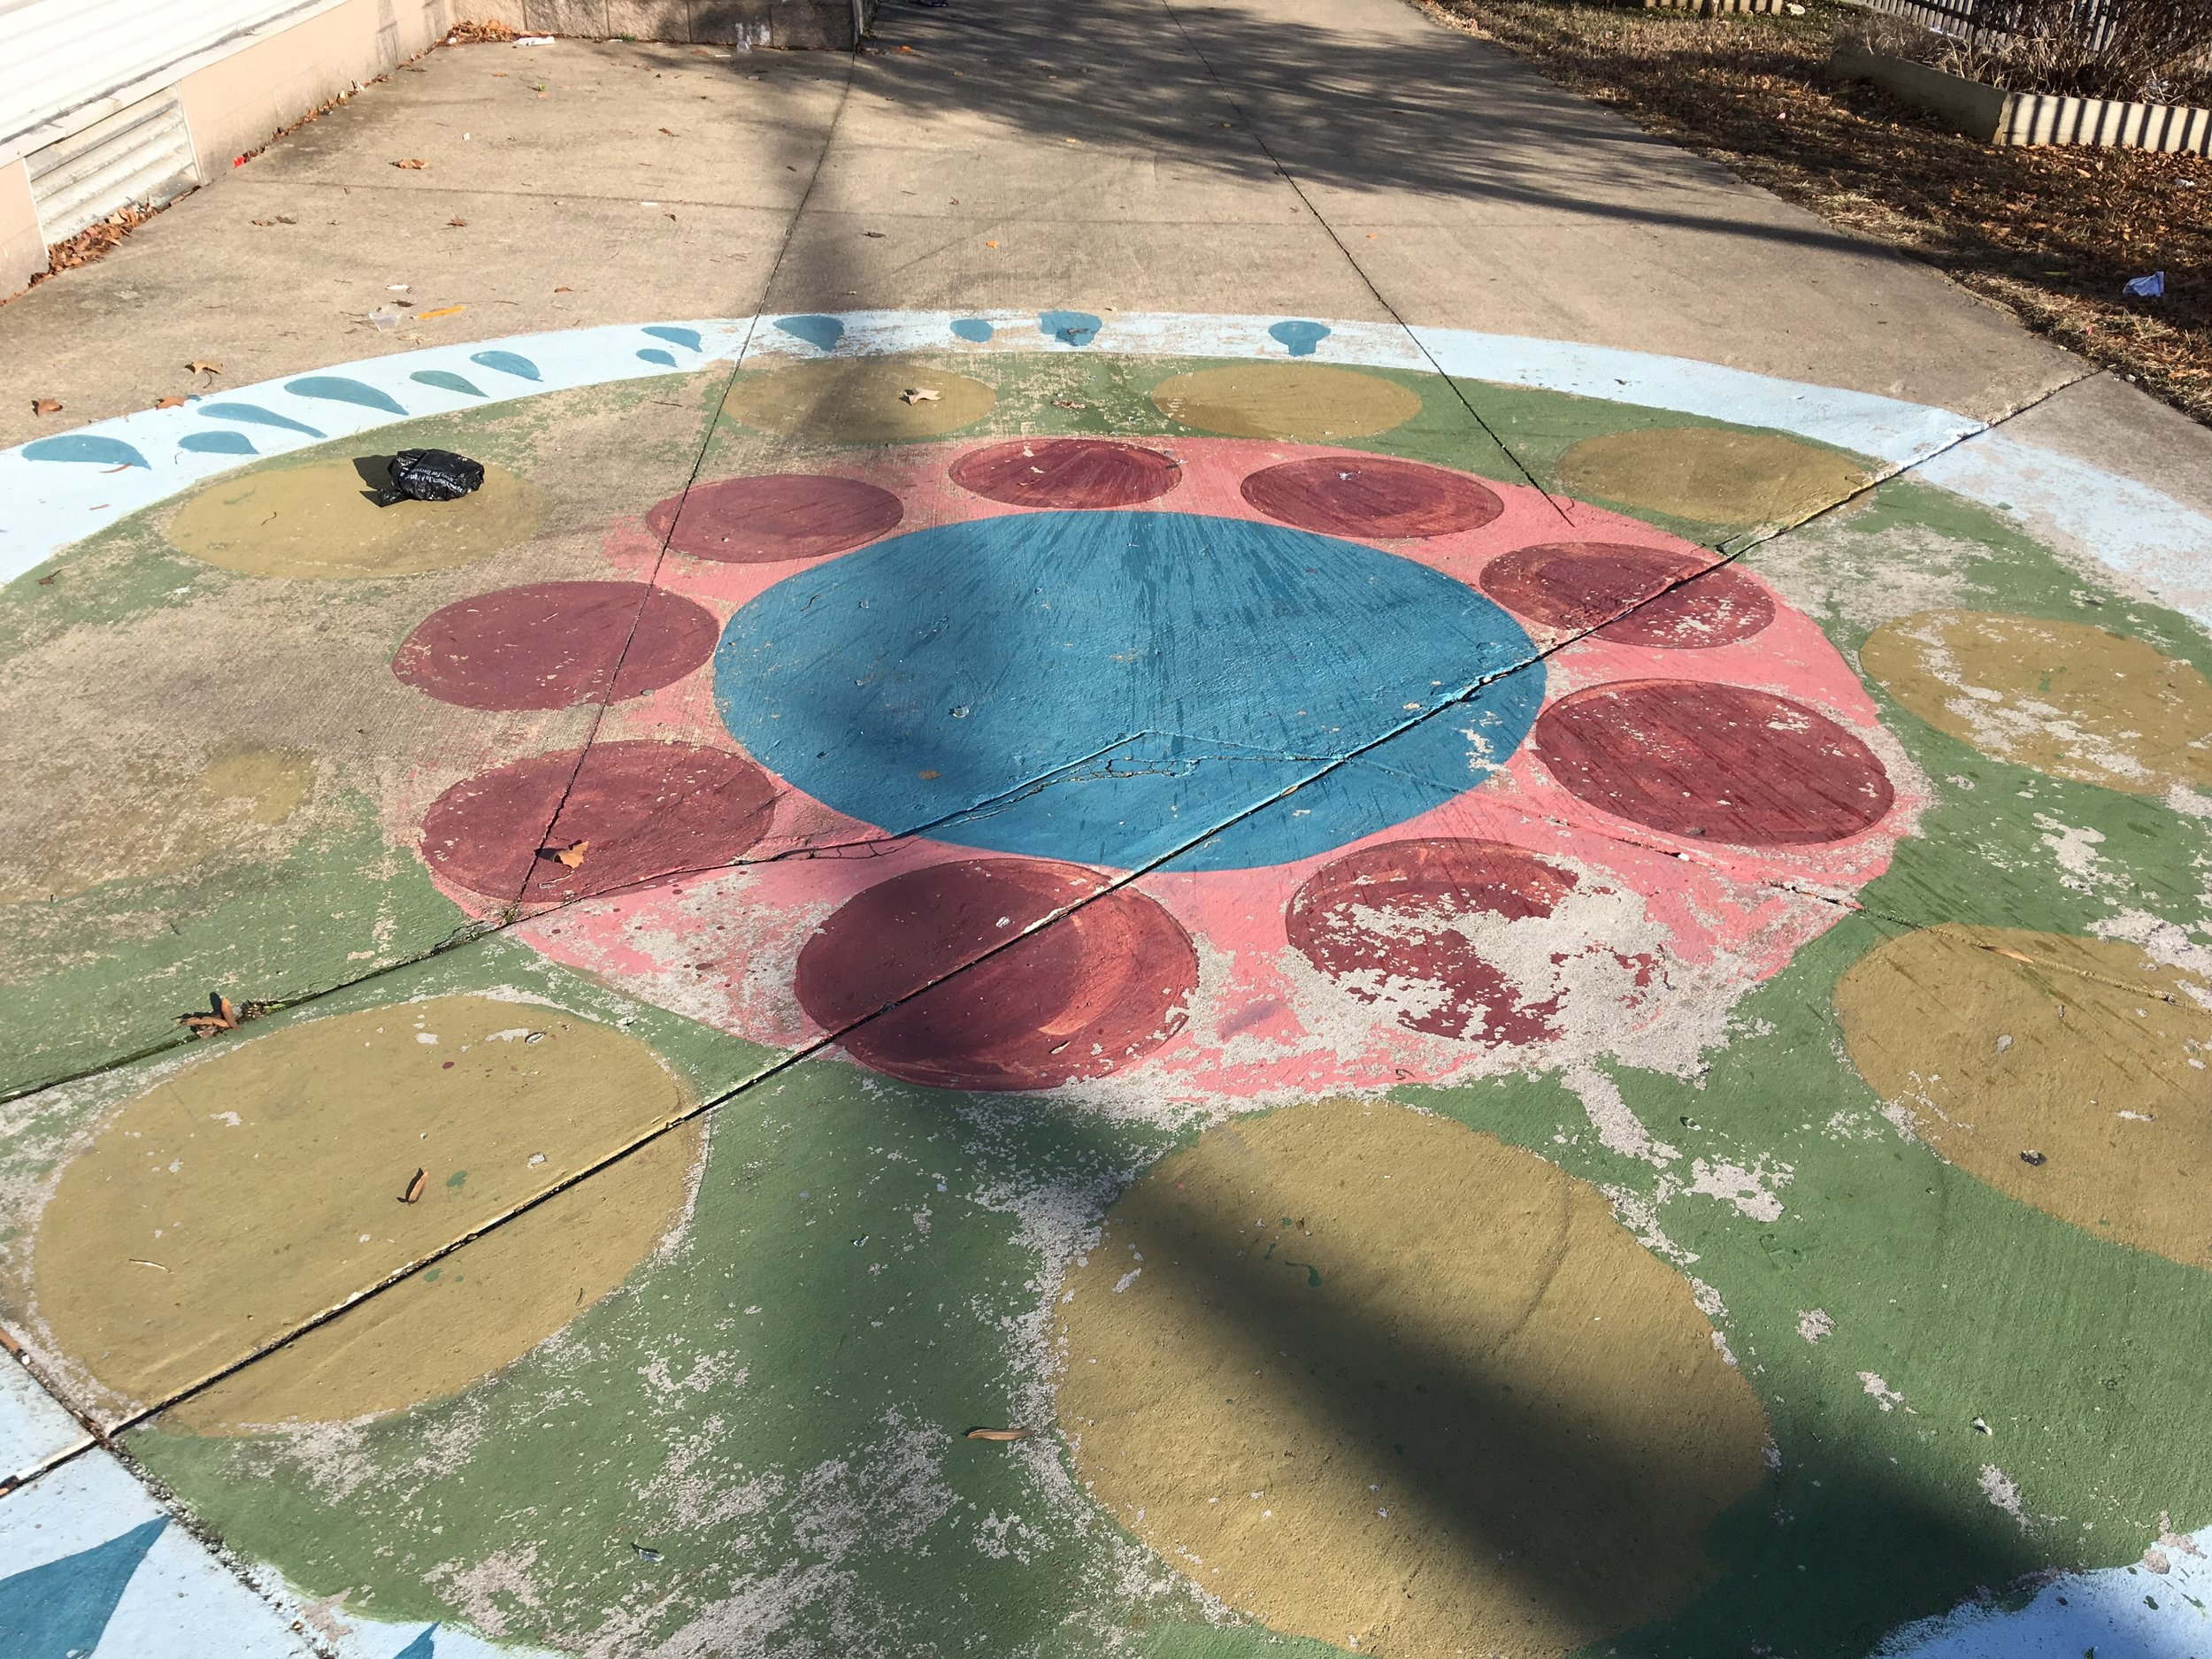 A ground mural in the playground area